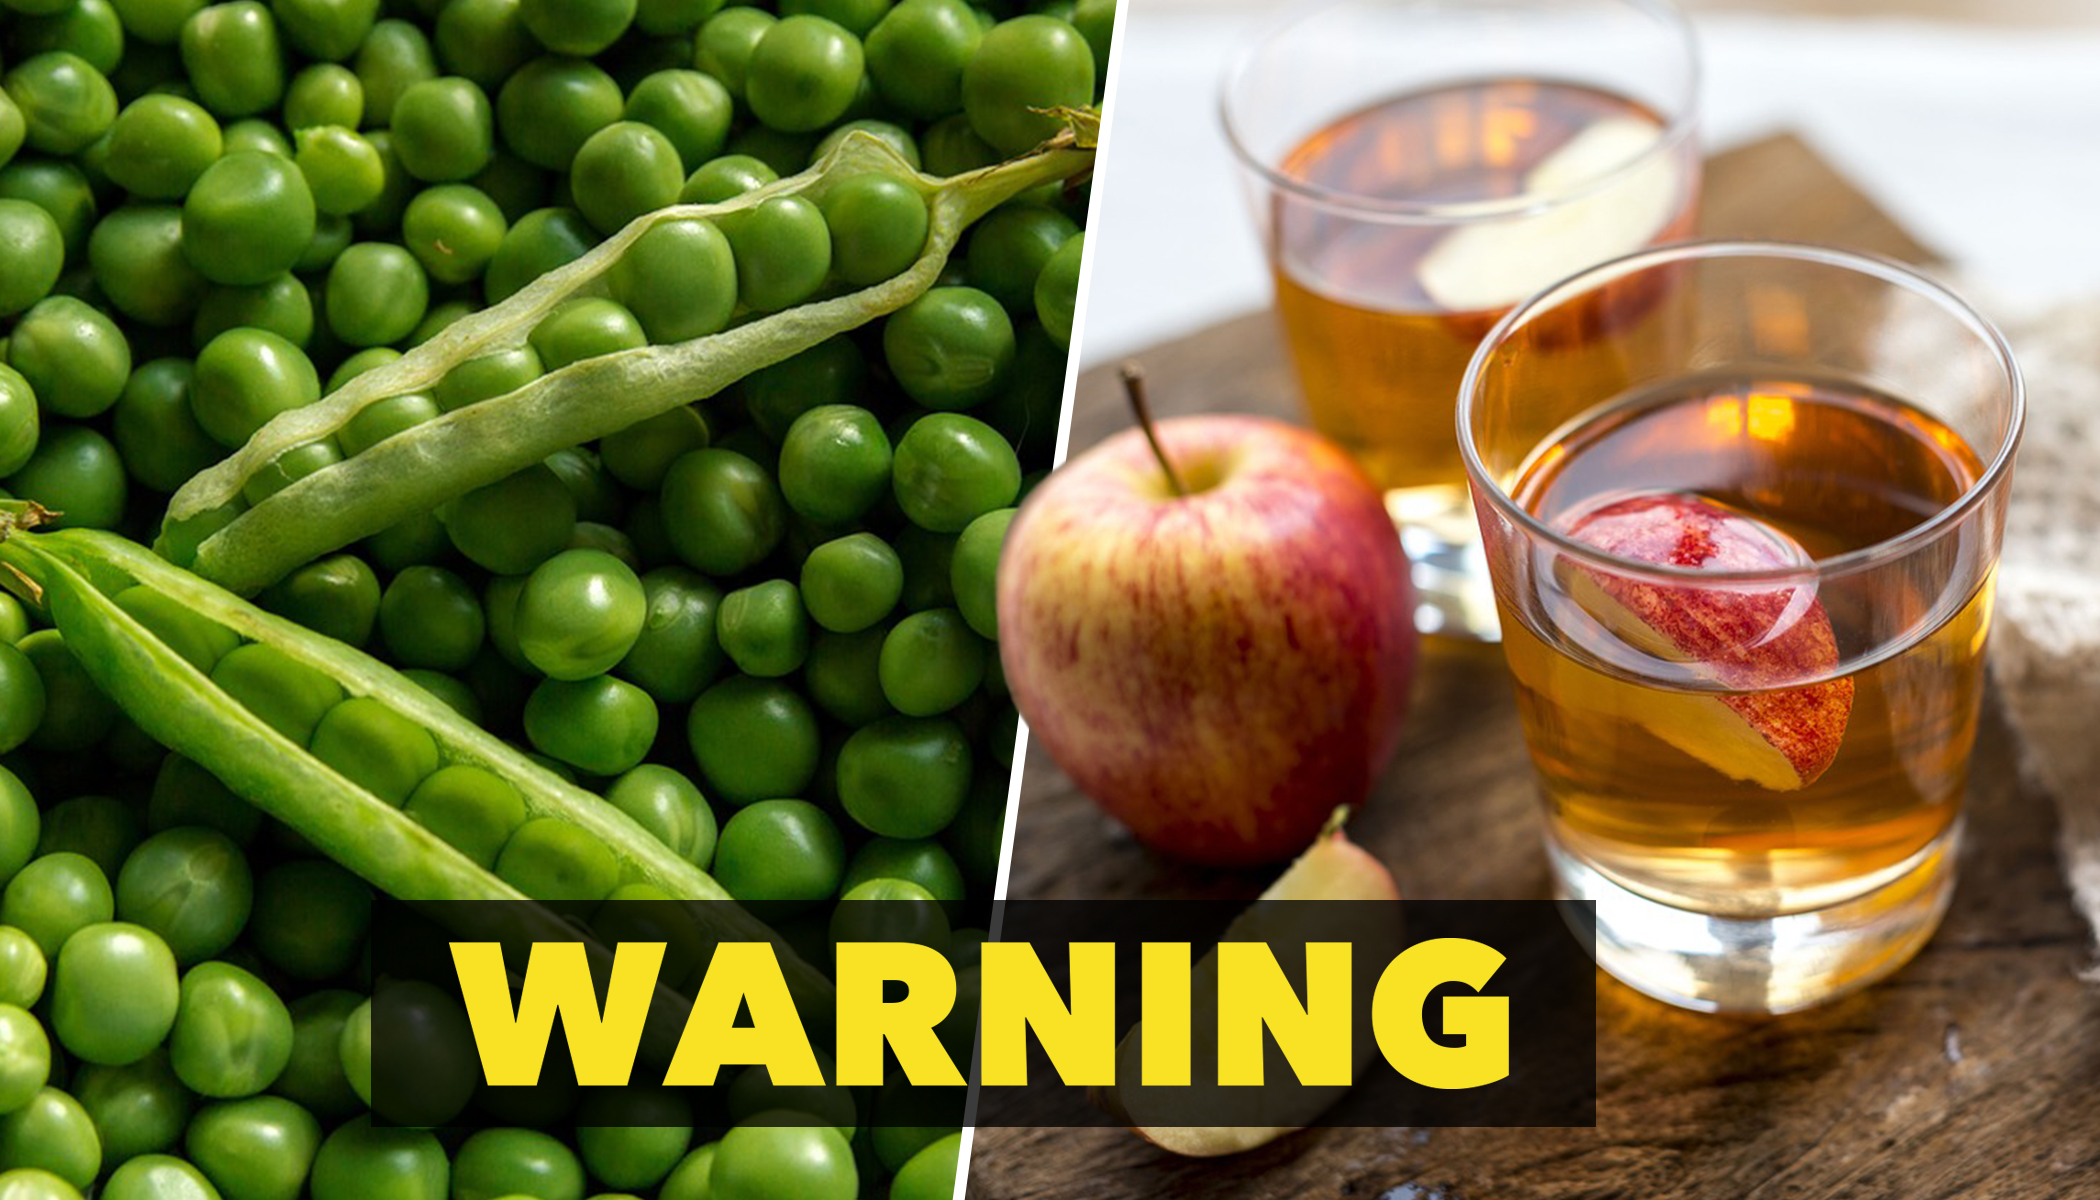 10 'Made in China' Cancer-Causing Foods You Must Avoid